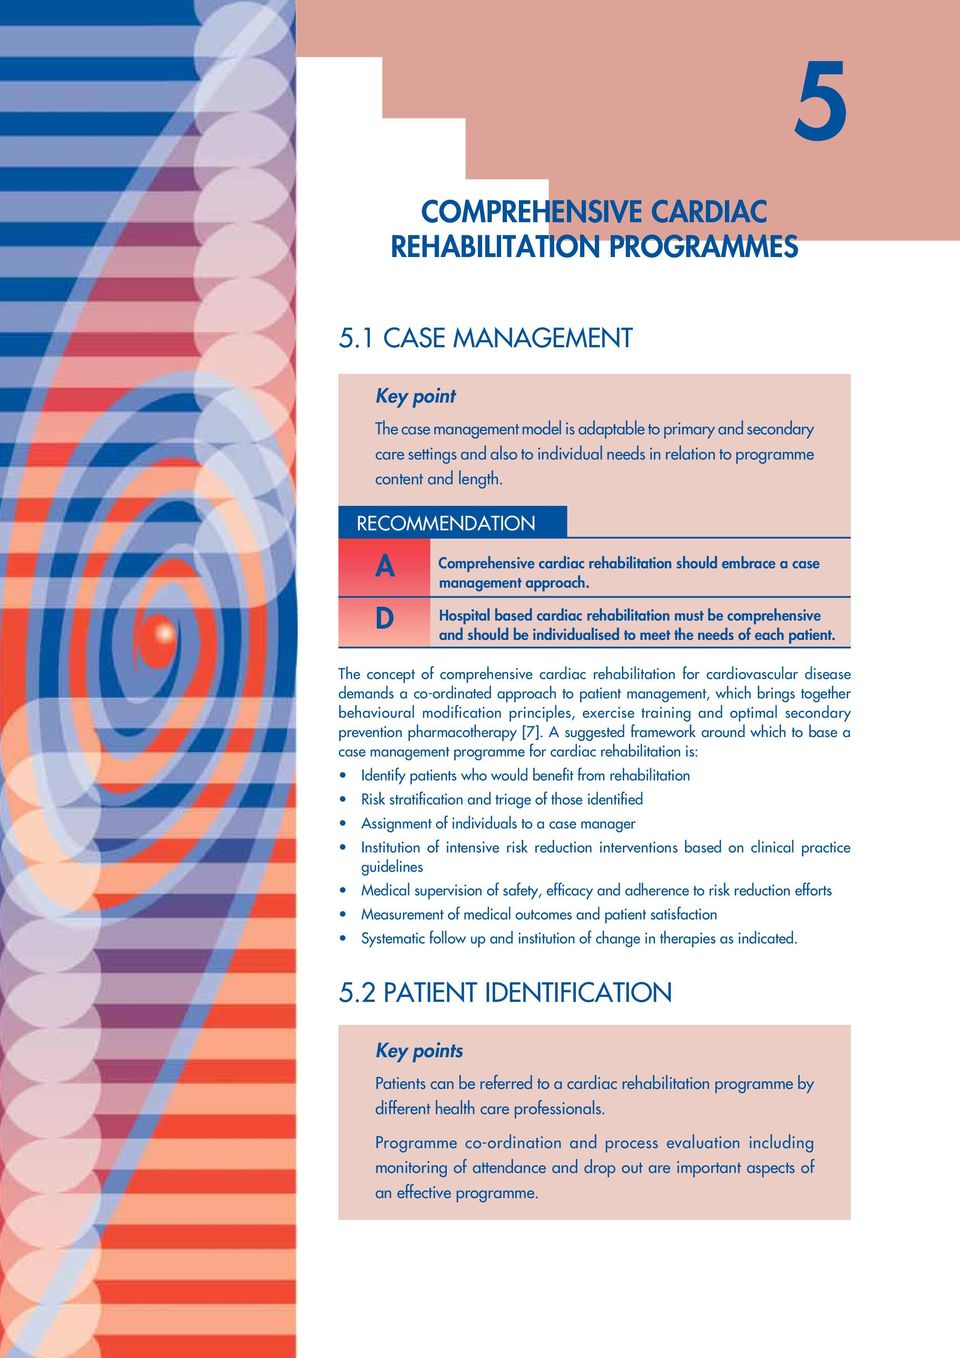 RECOMMENATION A Comprehensive cardiac rehabilitation should embrace a case management approach.